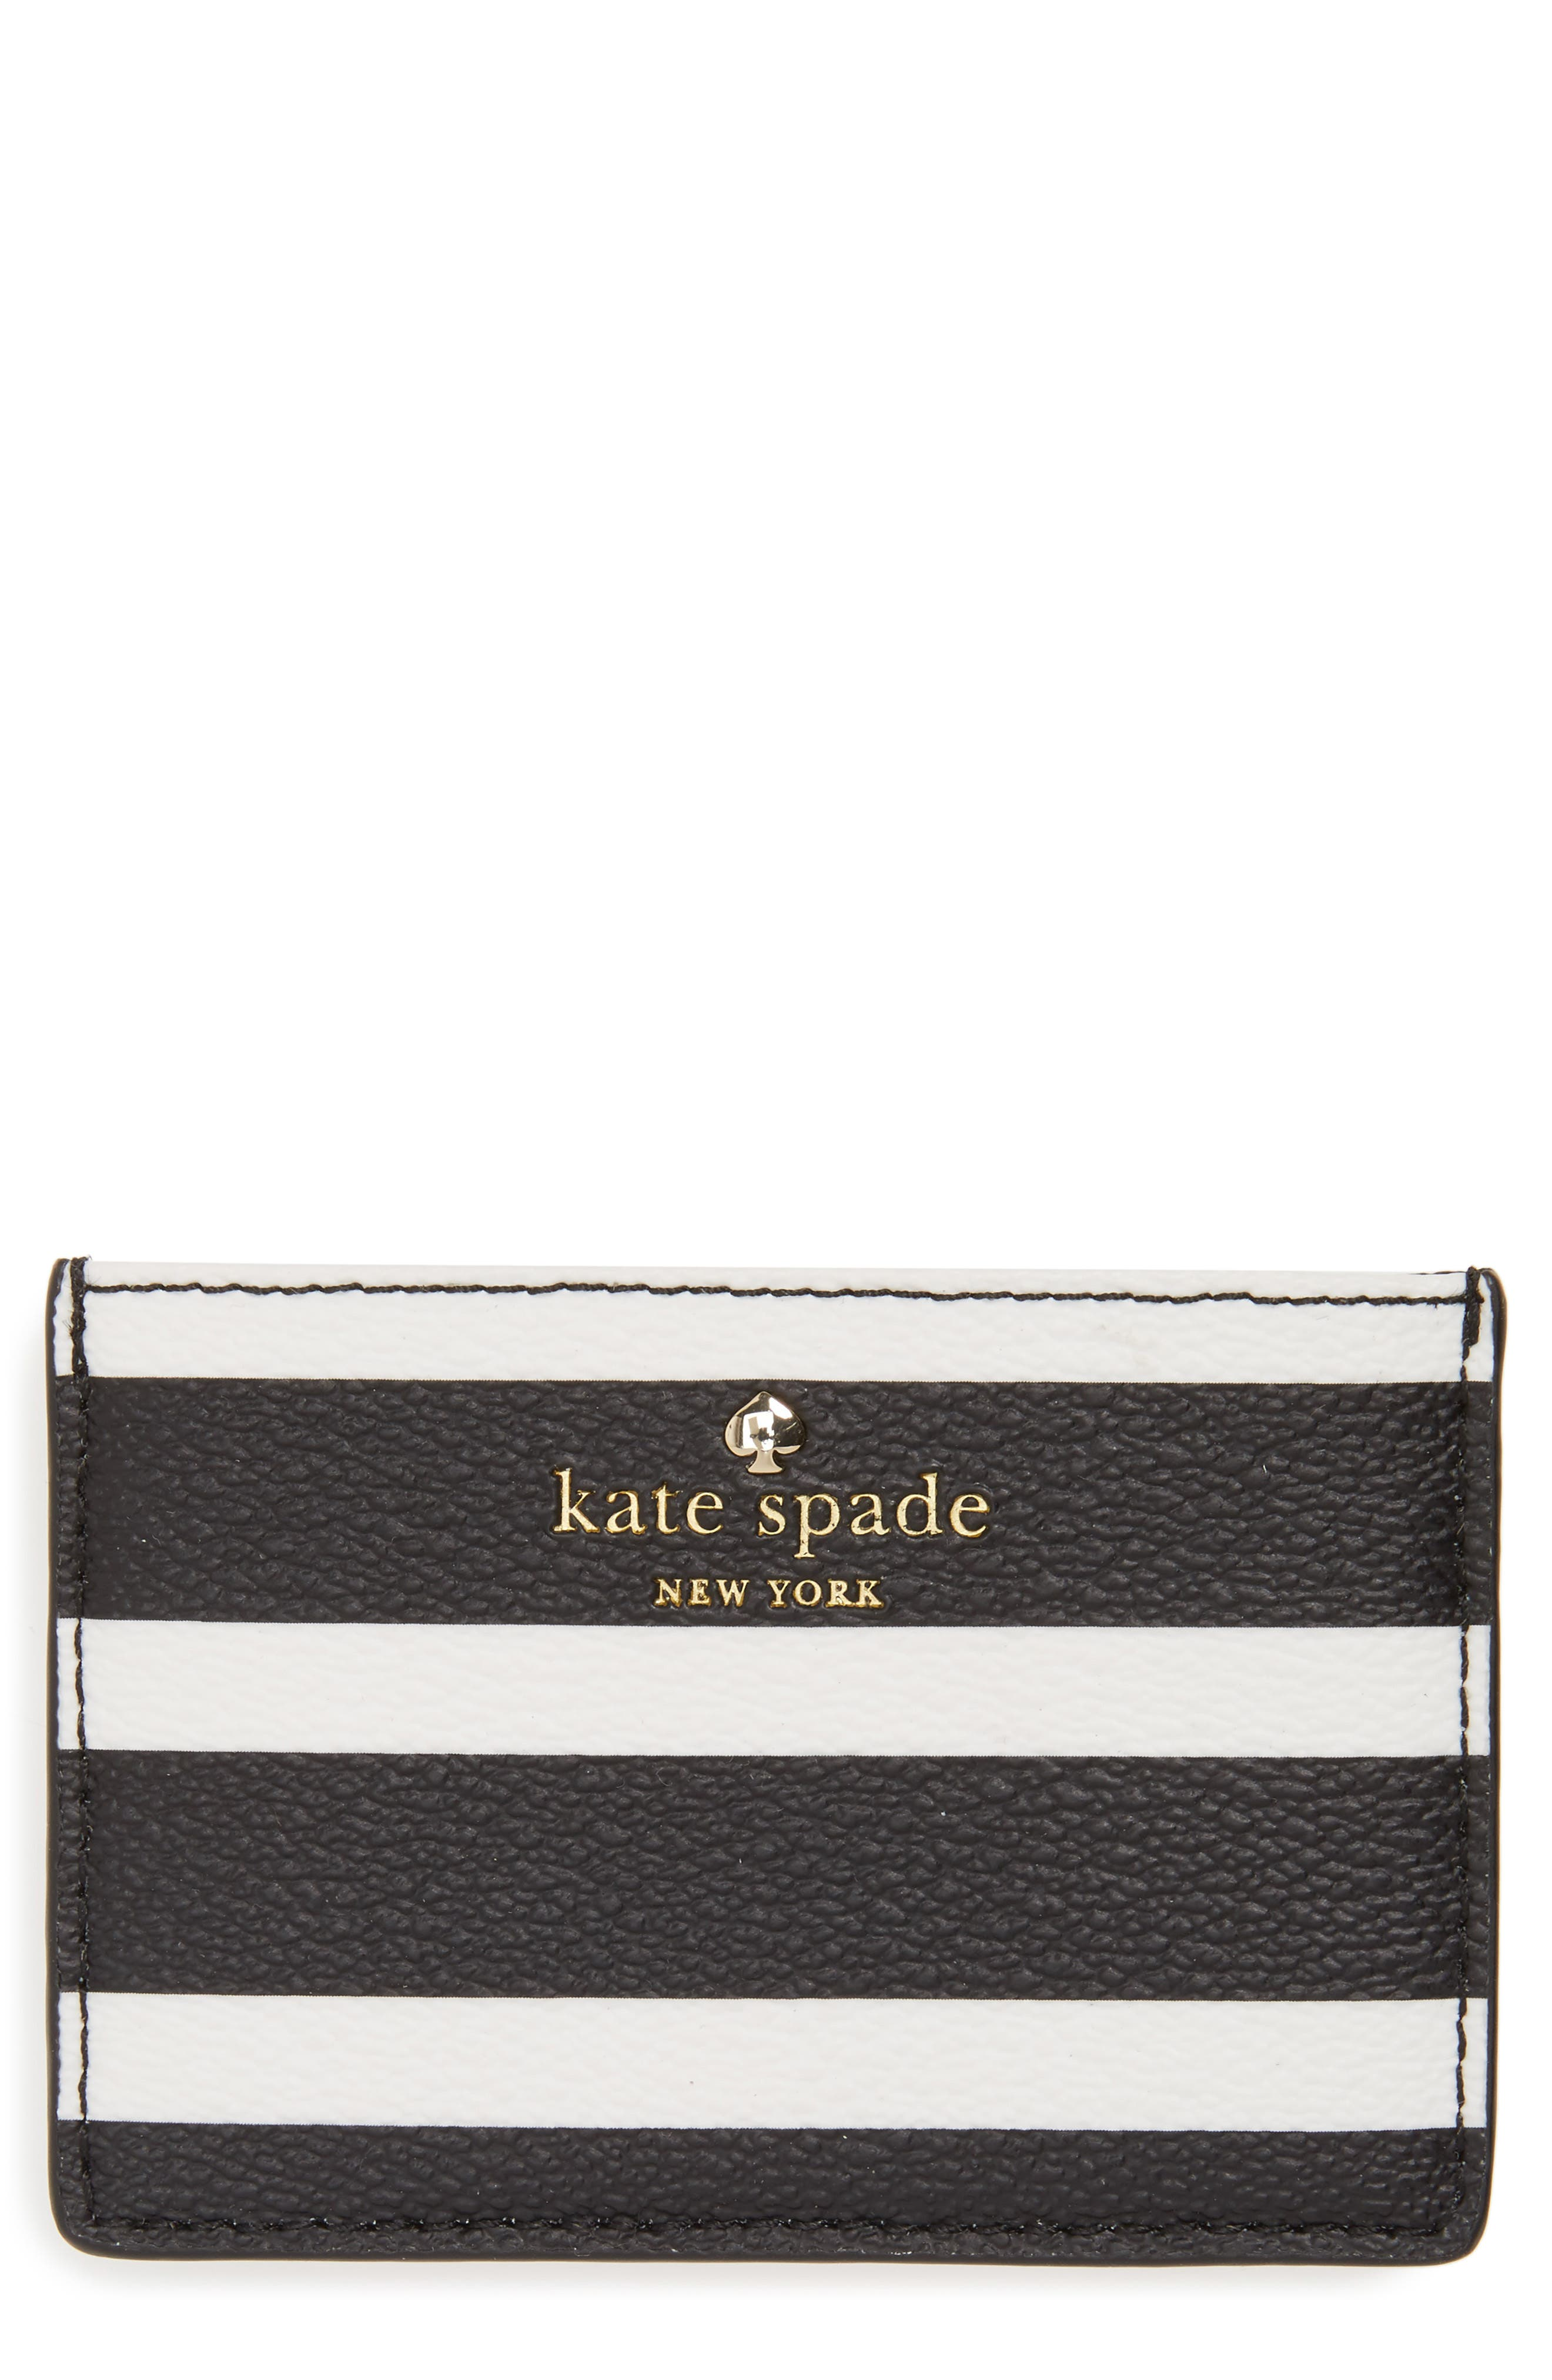 KATE SPADE NEW YORK hyde lane stripe card case